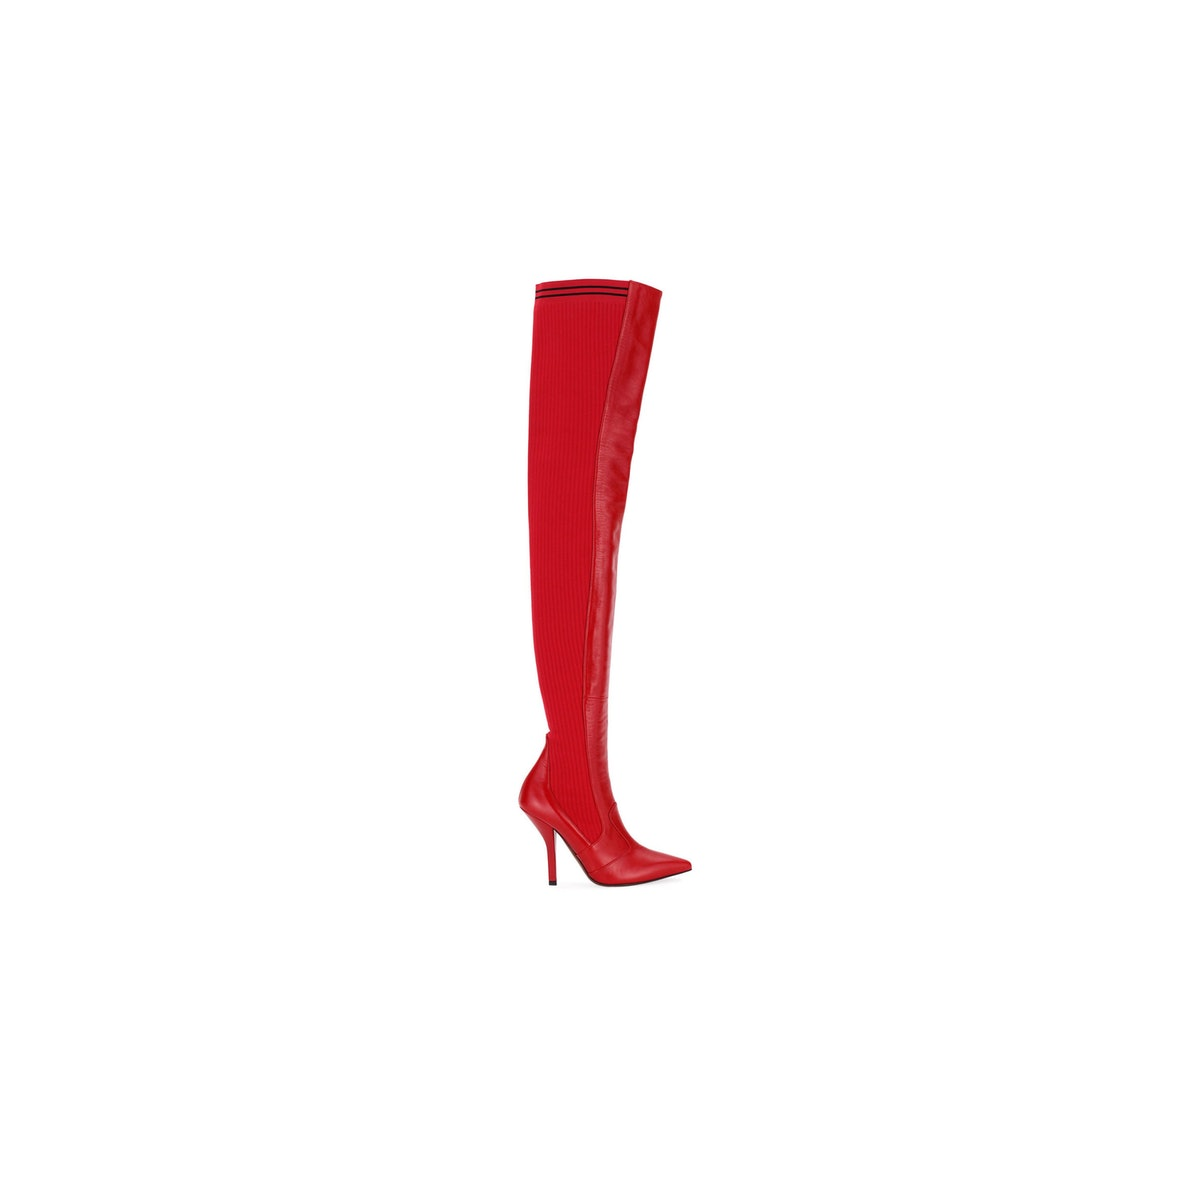 Tall boots9.png